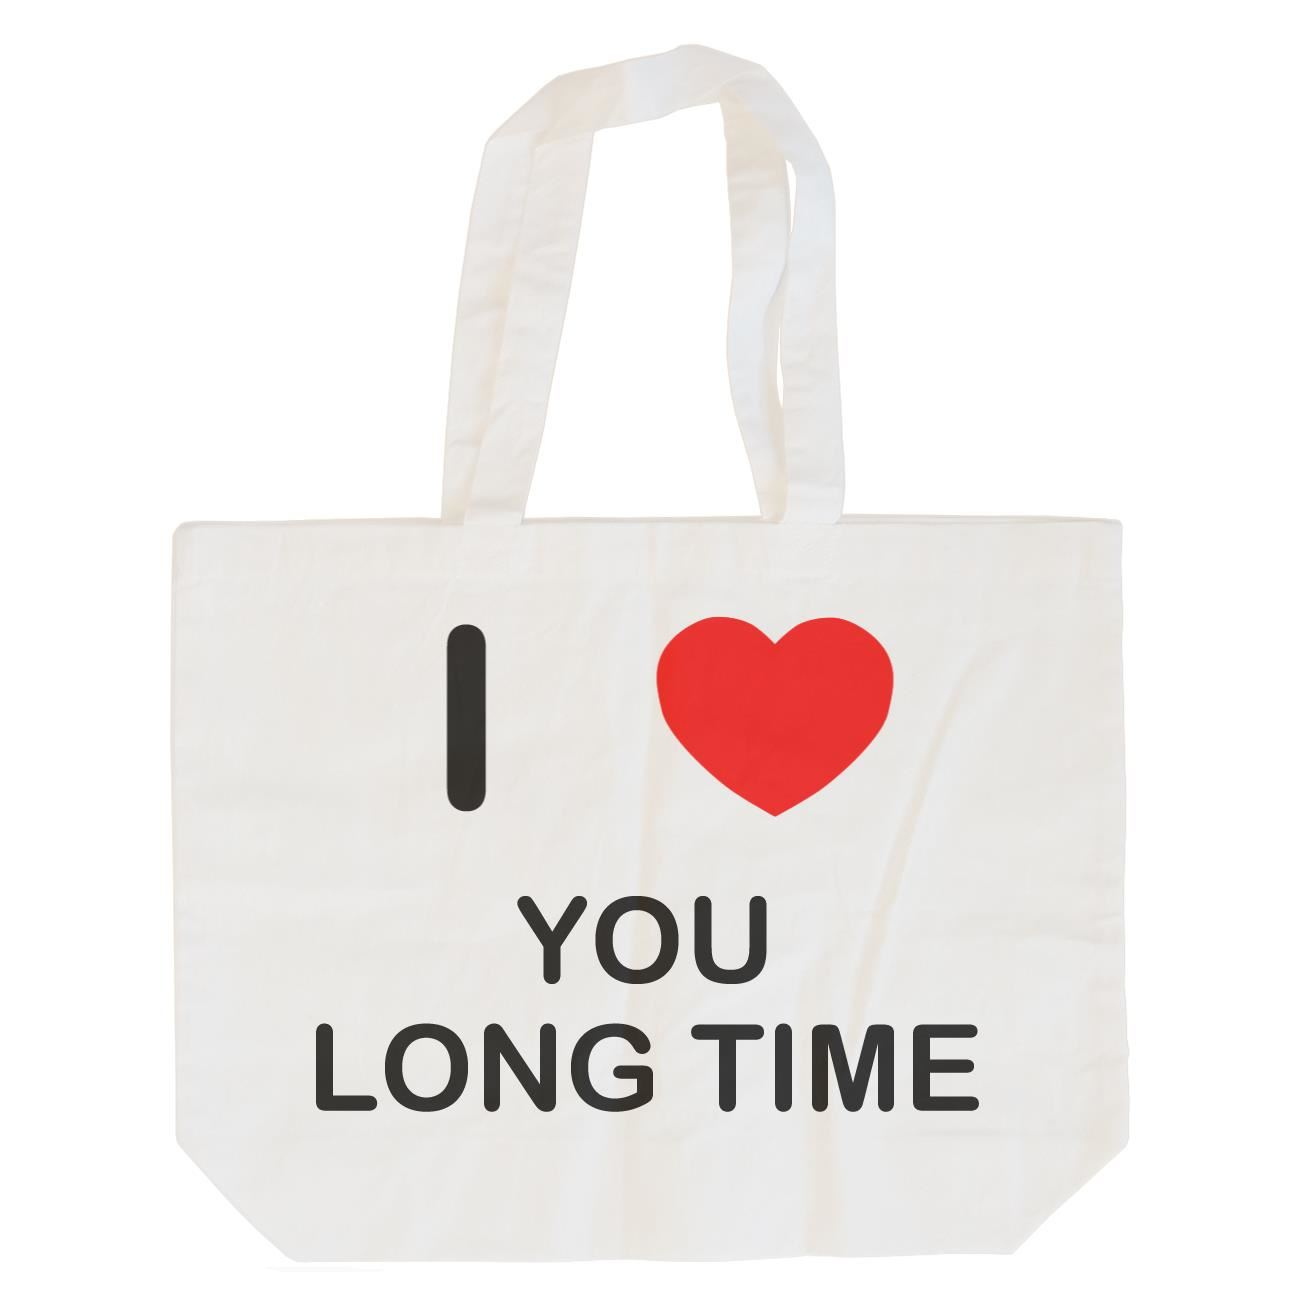 I Love You Long Time - Cotton Bag | Size choice Tote, Shopper or Sling